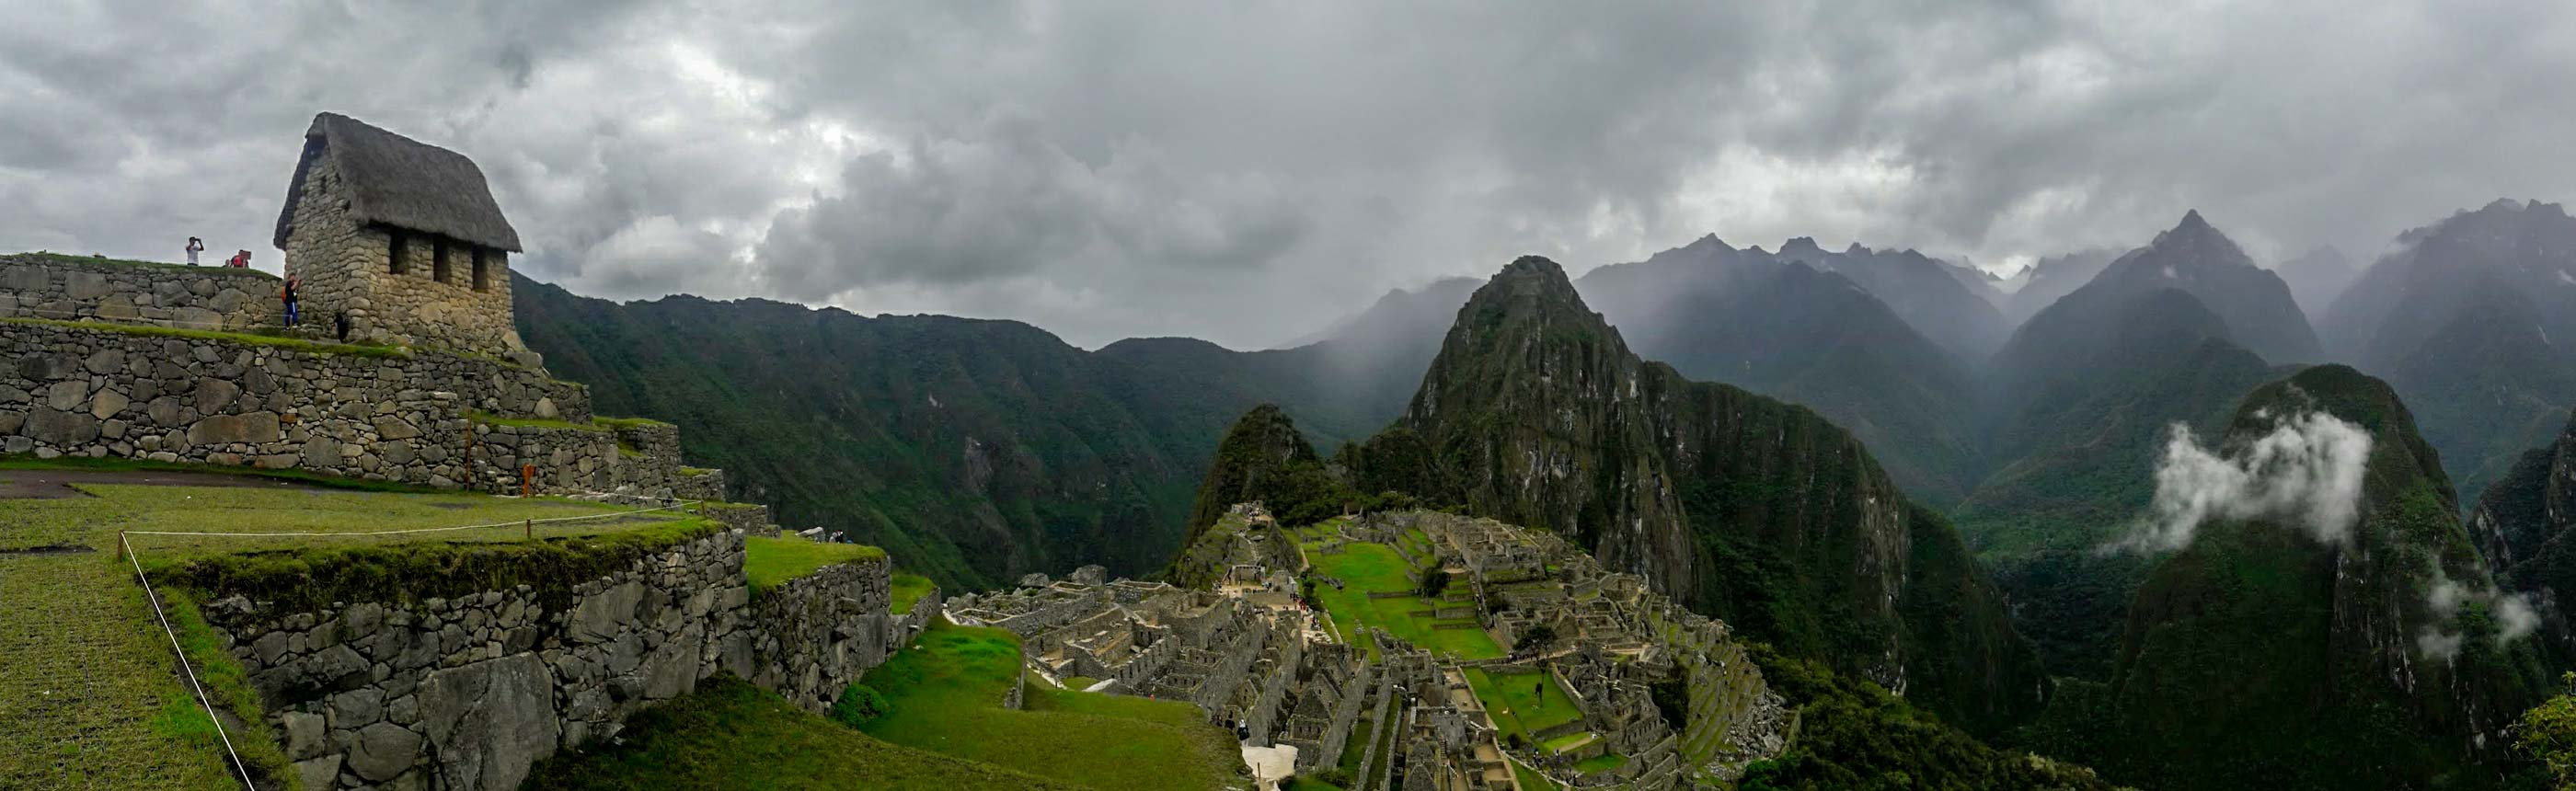 Cusco City, Sacred Valley 2 Day & Machu Picchu Tour (4 Days / 3 Nights)